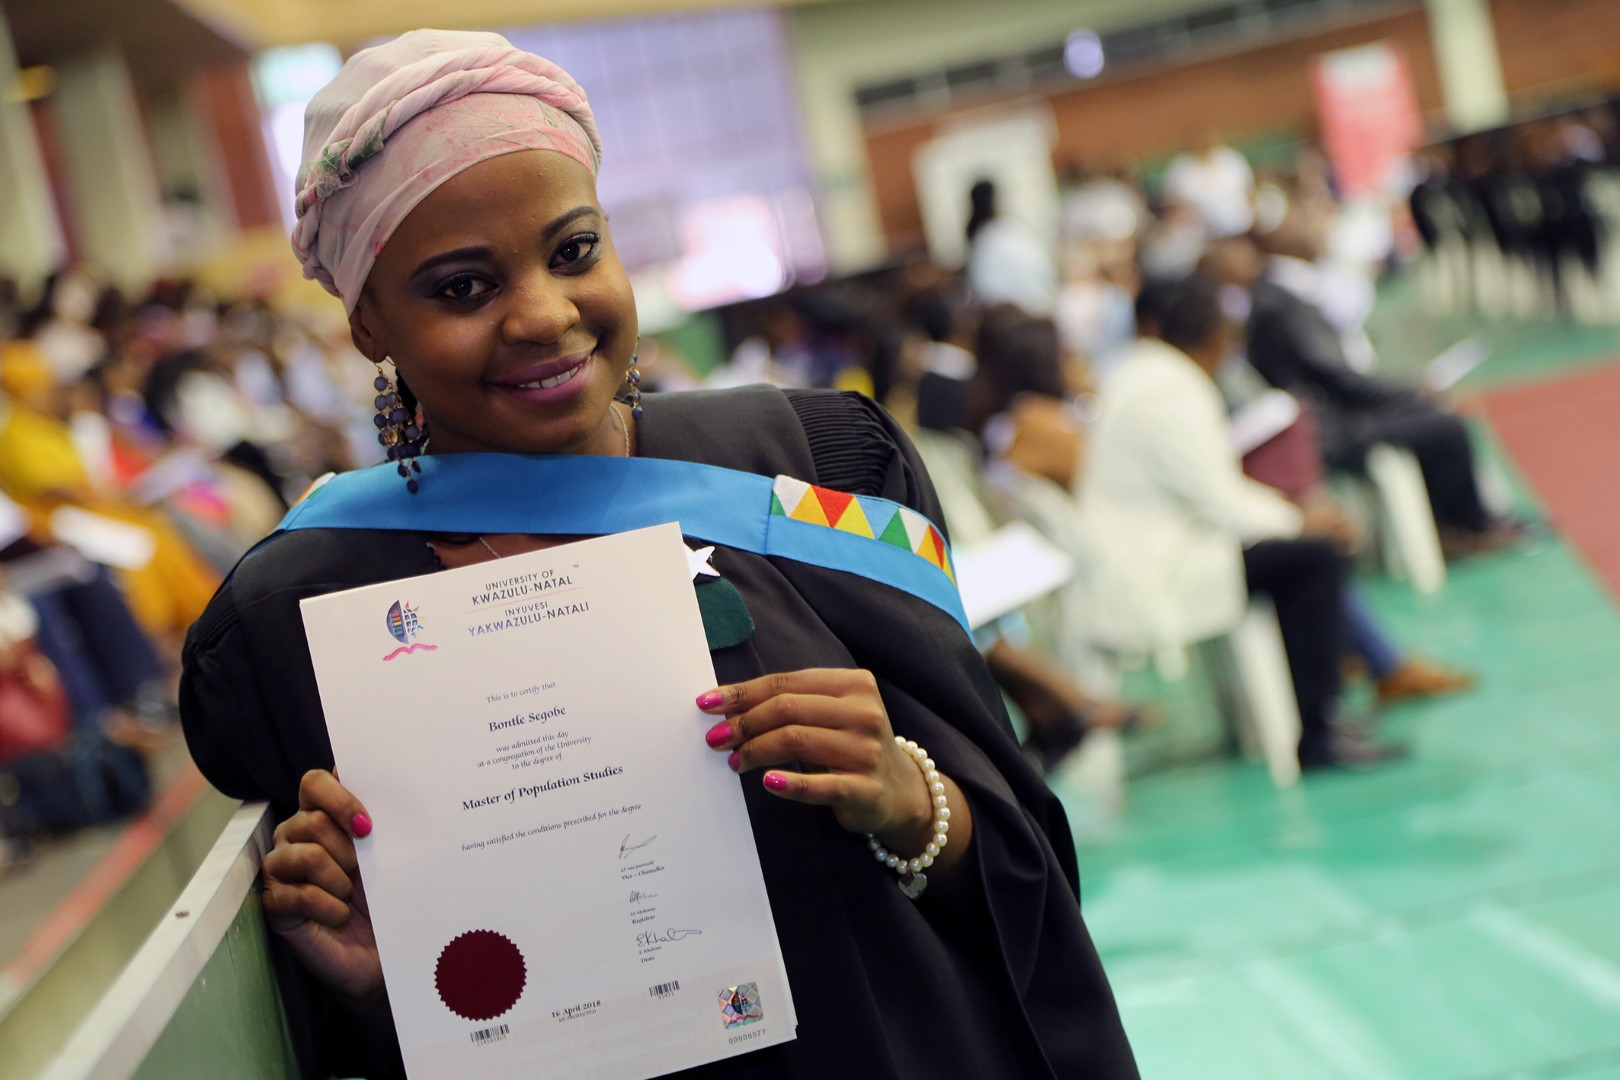 Masters in Populations Studies graduate Ms Bontle Segobe.